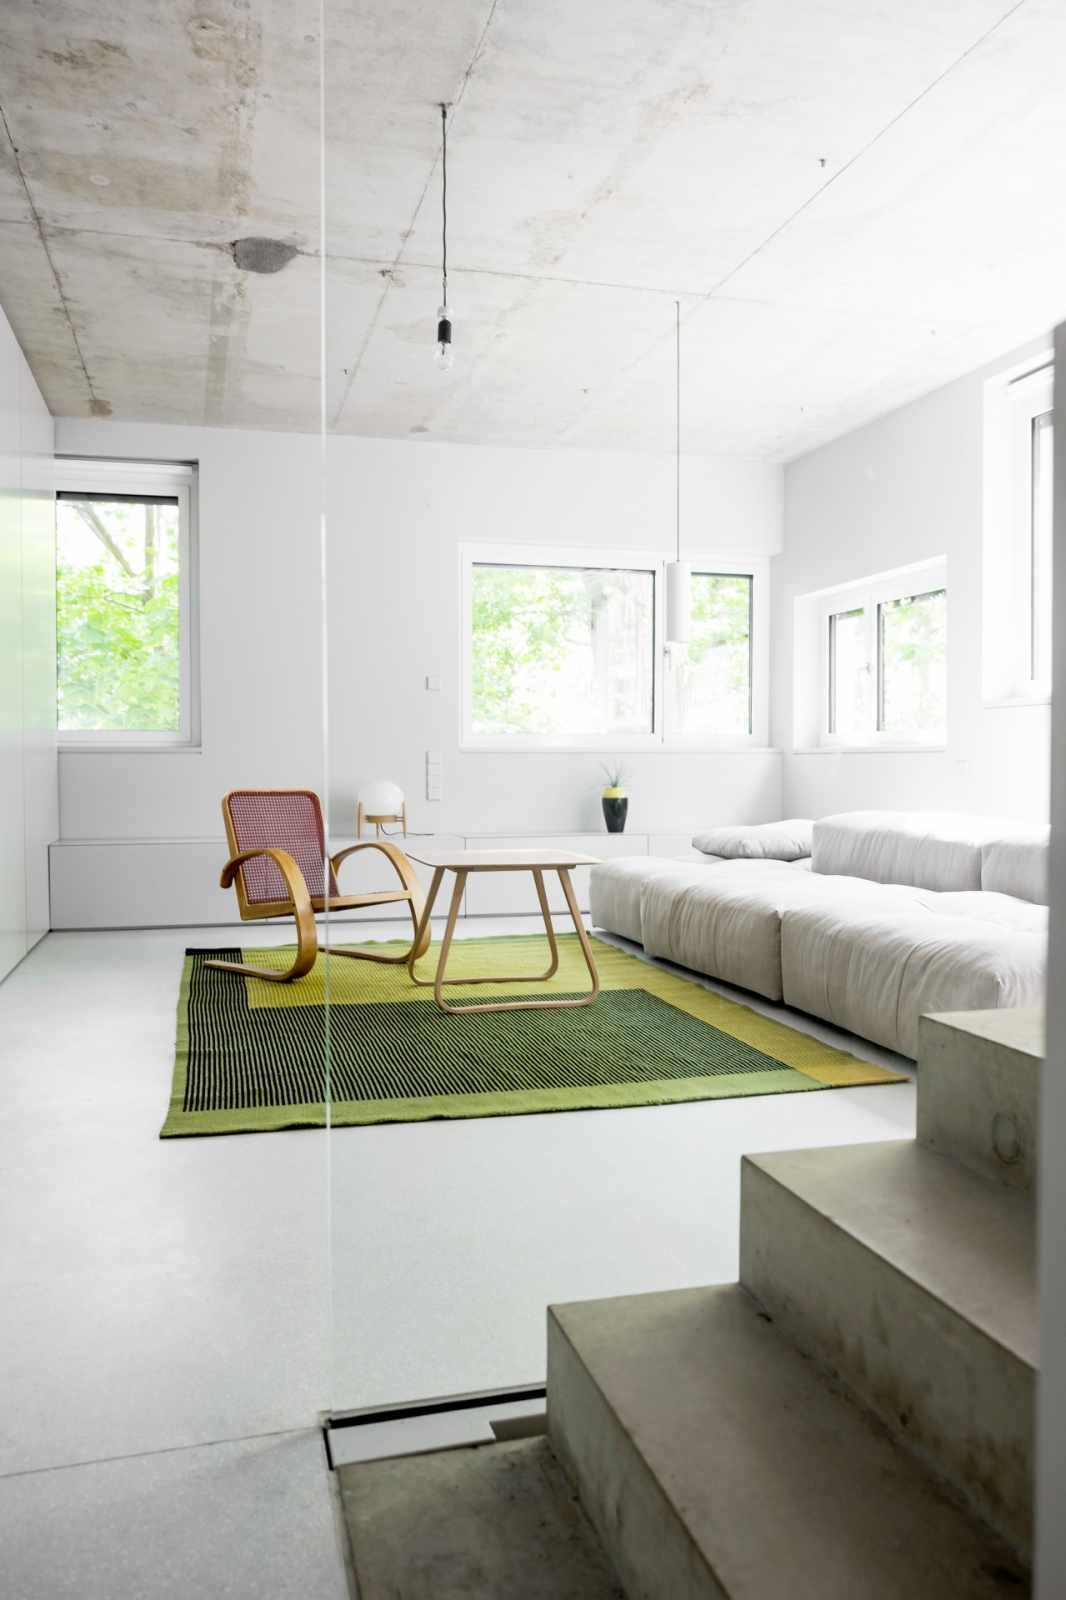 Living Room, Chair, and Concrete Floor  House on Prenzlauer Berg